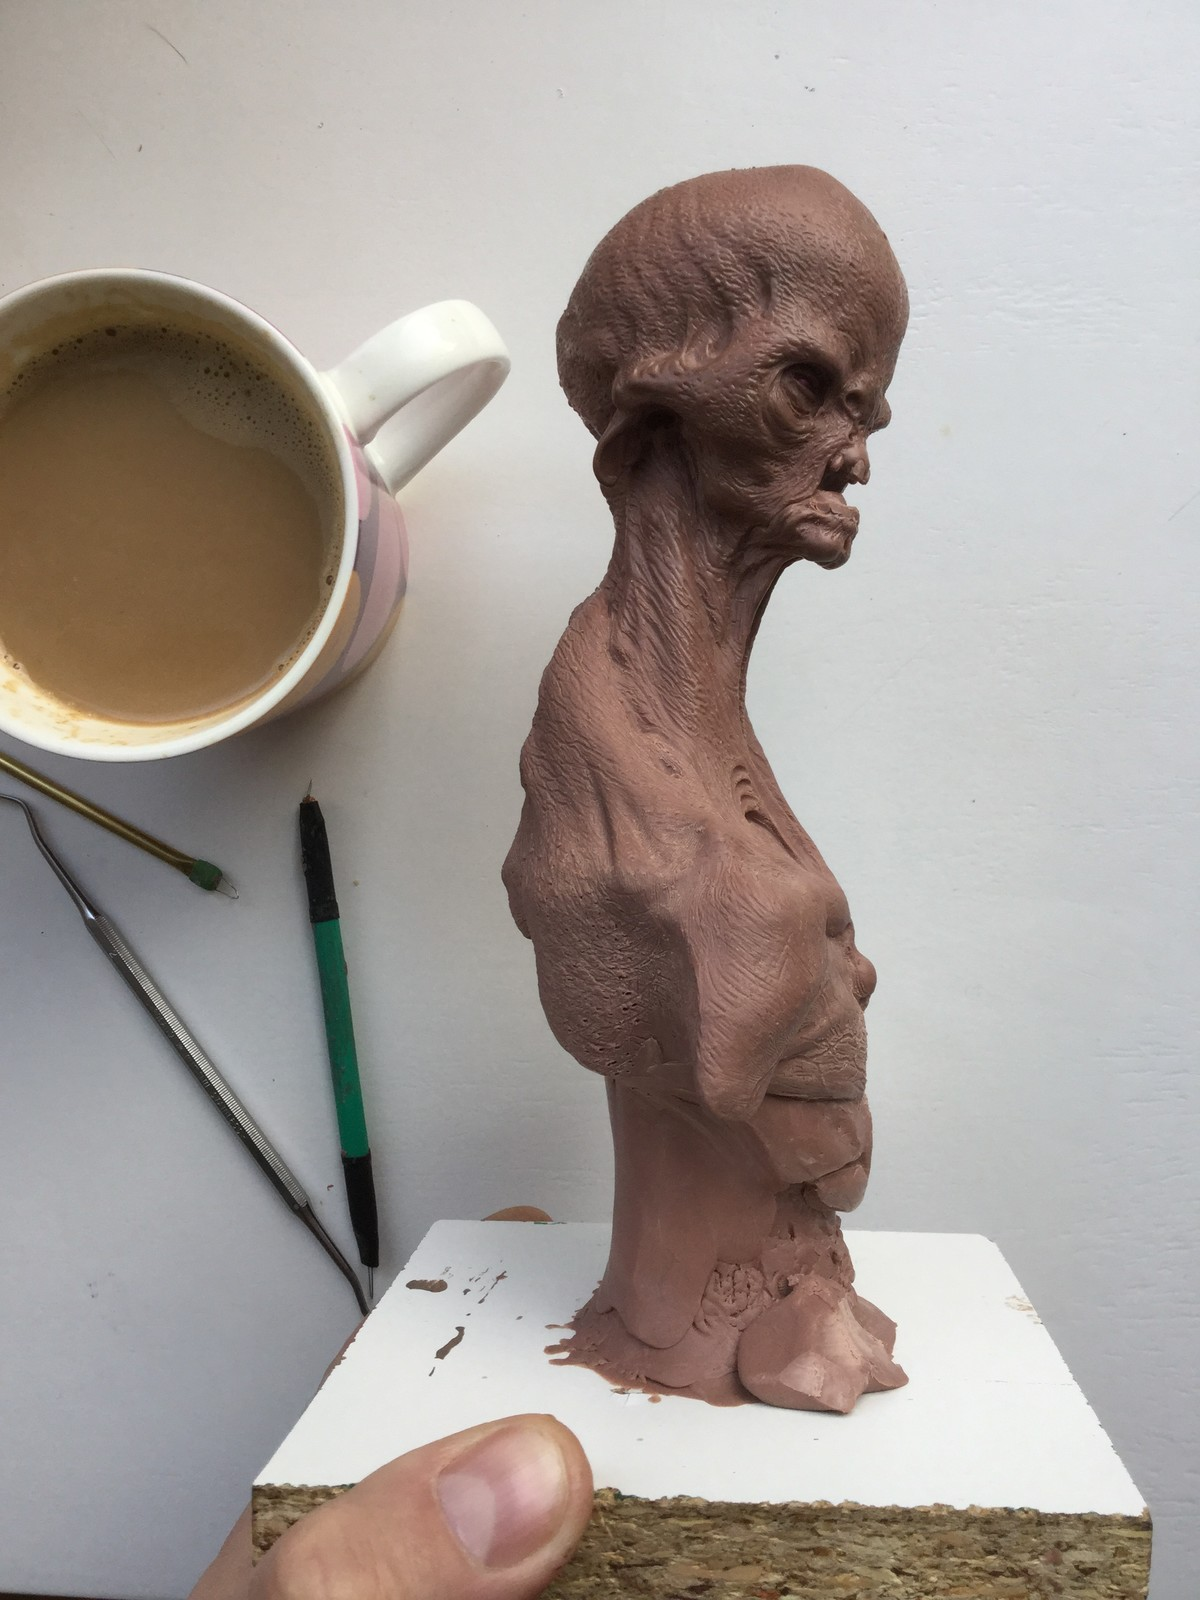 Alien/monster clay/work in progress